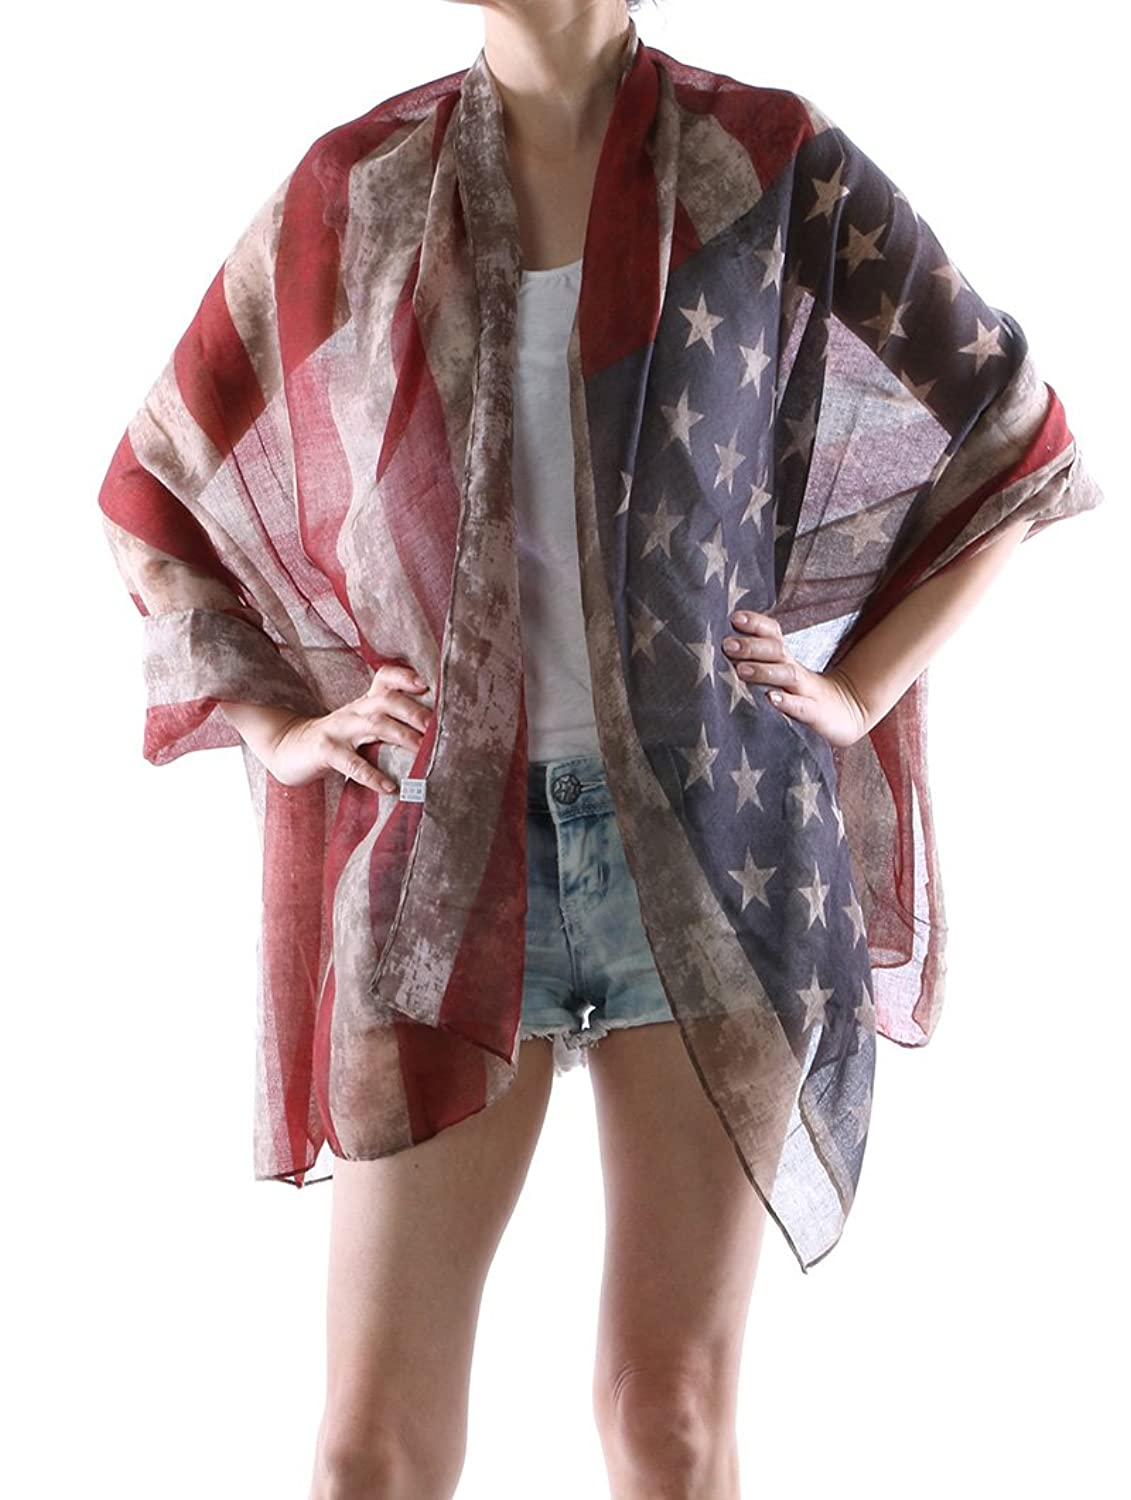 Parisian Chic Scarf Stars And Stripes Frayed Edge Distressed American Flag Red White And Blue X Viscose One Size Multi